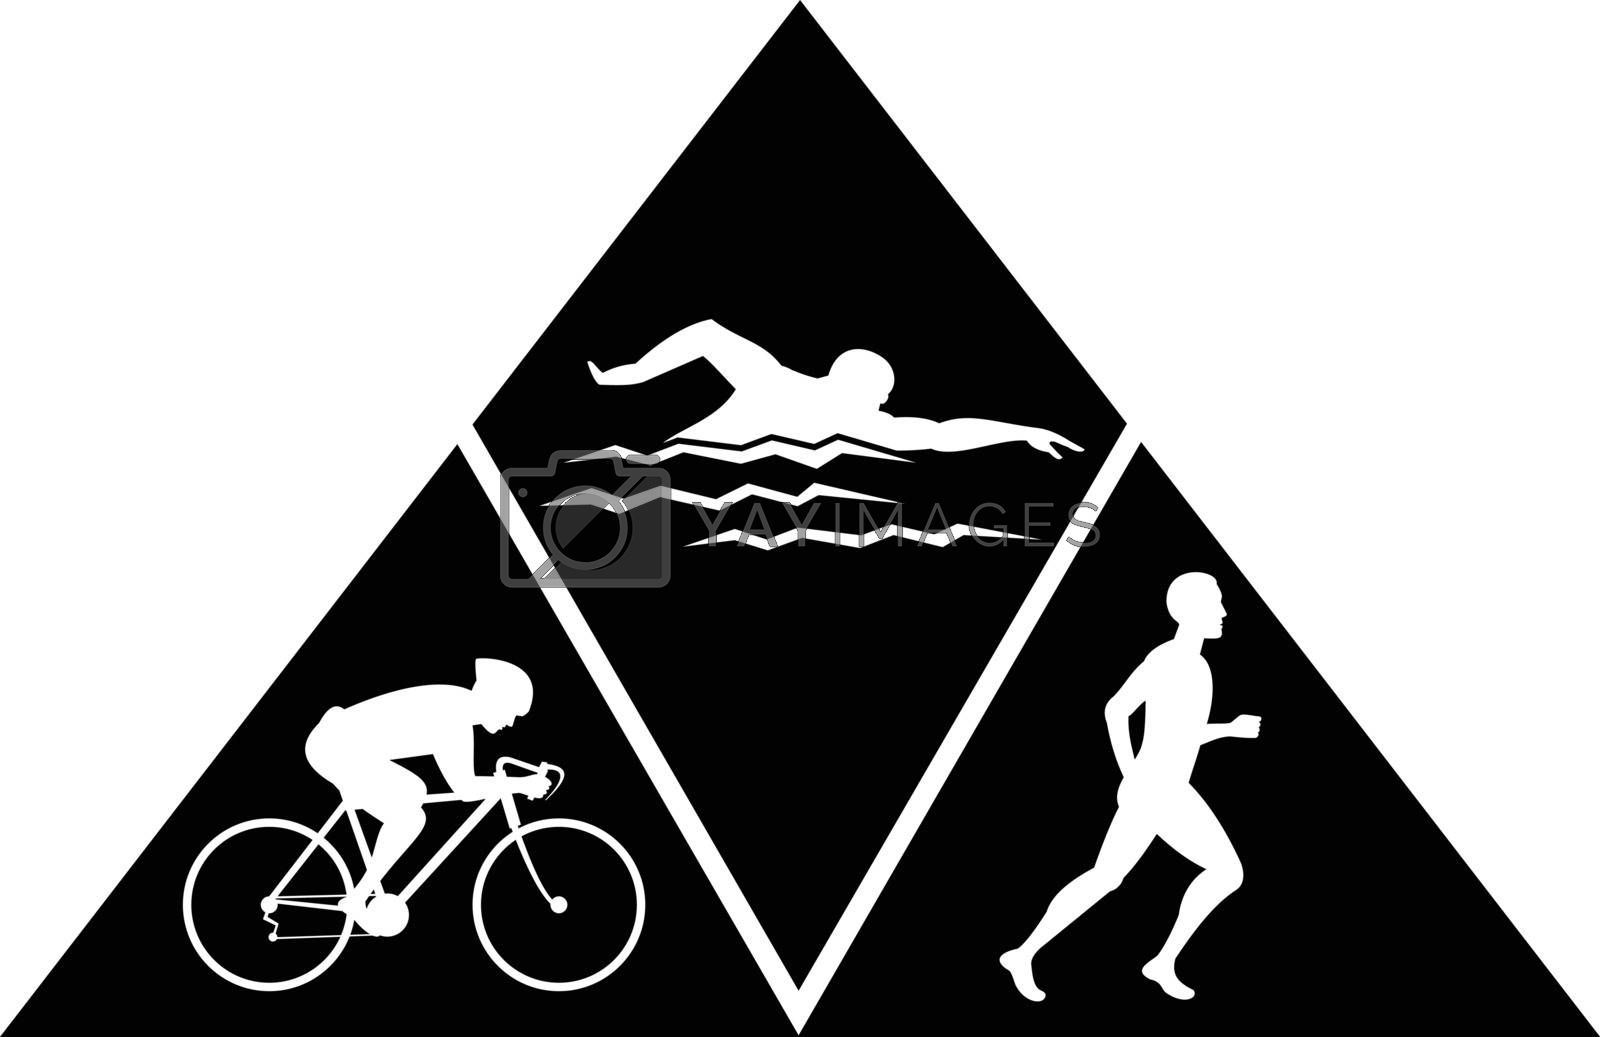 Retro black and white style illustration of triathlon, a multisport activity that comprises of running, swimming and cycling all in a single event set inside triangle on isolated background.